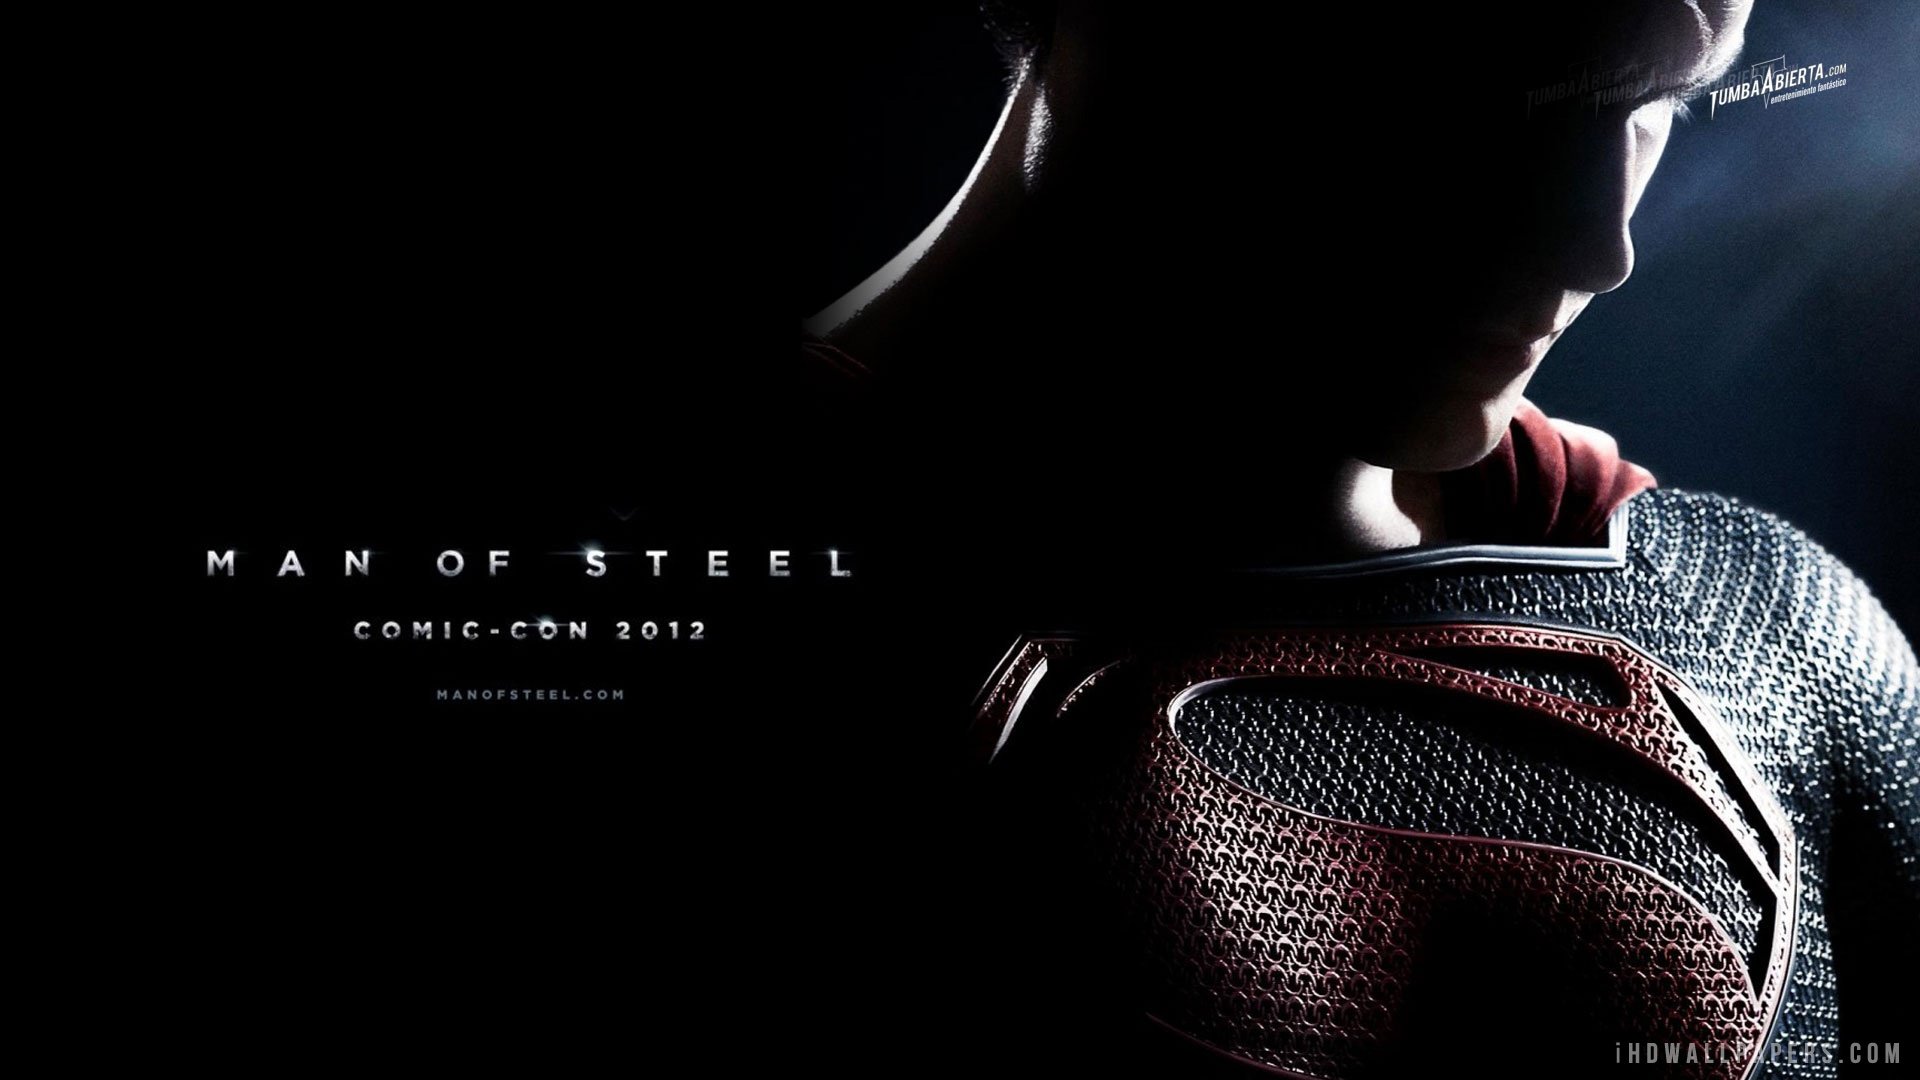 Man of Steel 2013 Movie HD Wallpaper   iHD Wallpapers 1920x1080